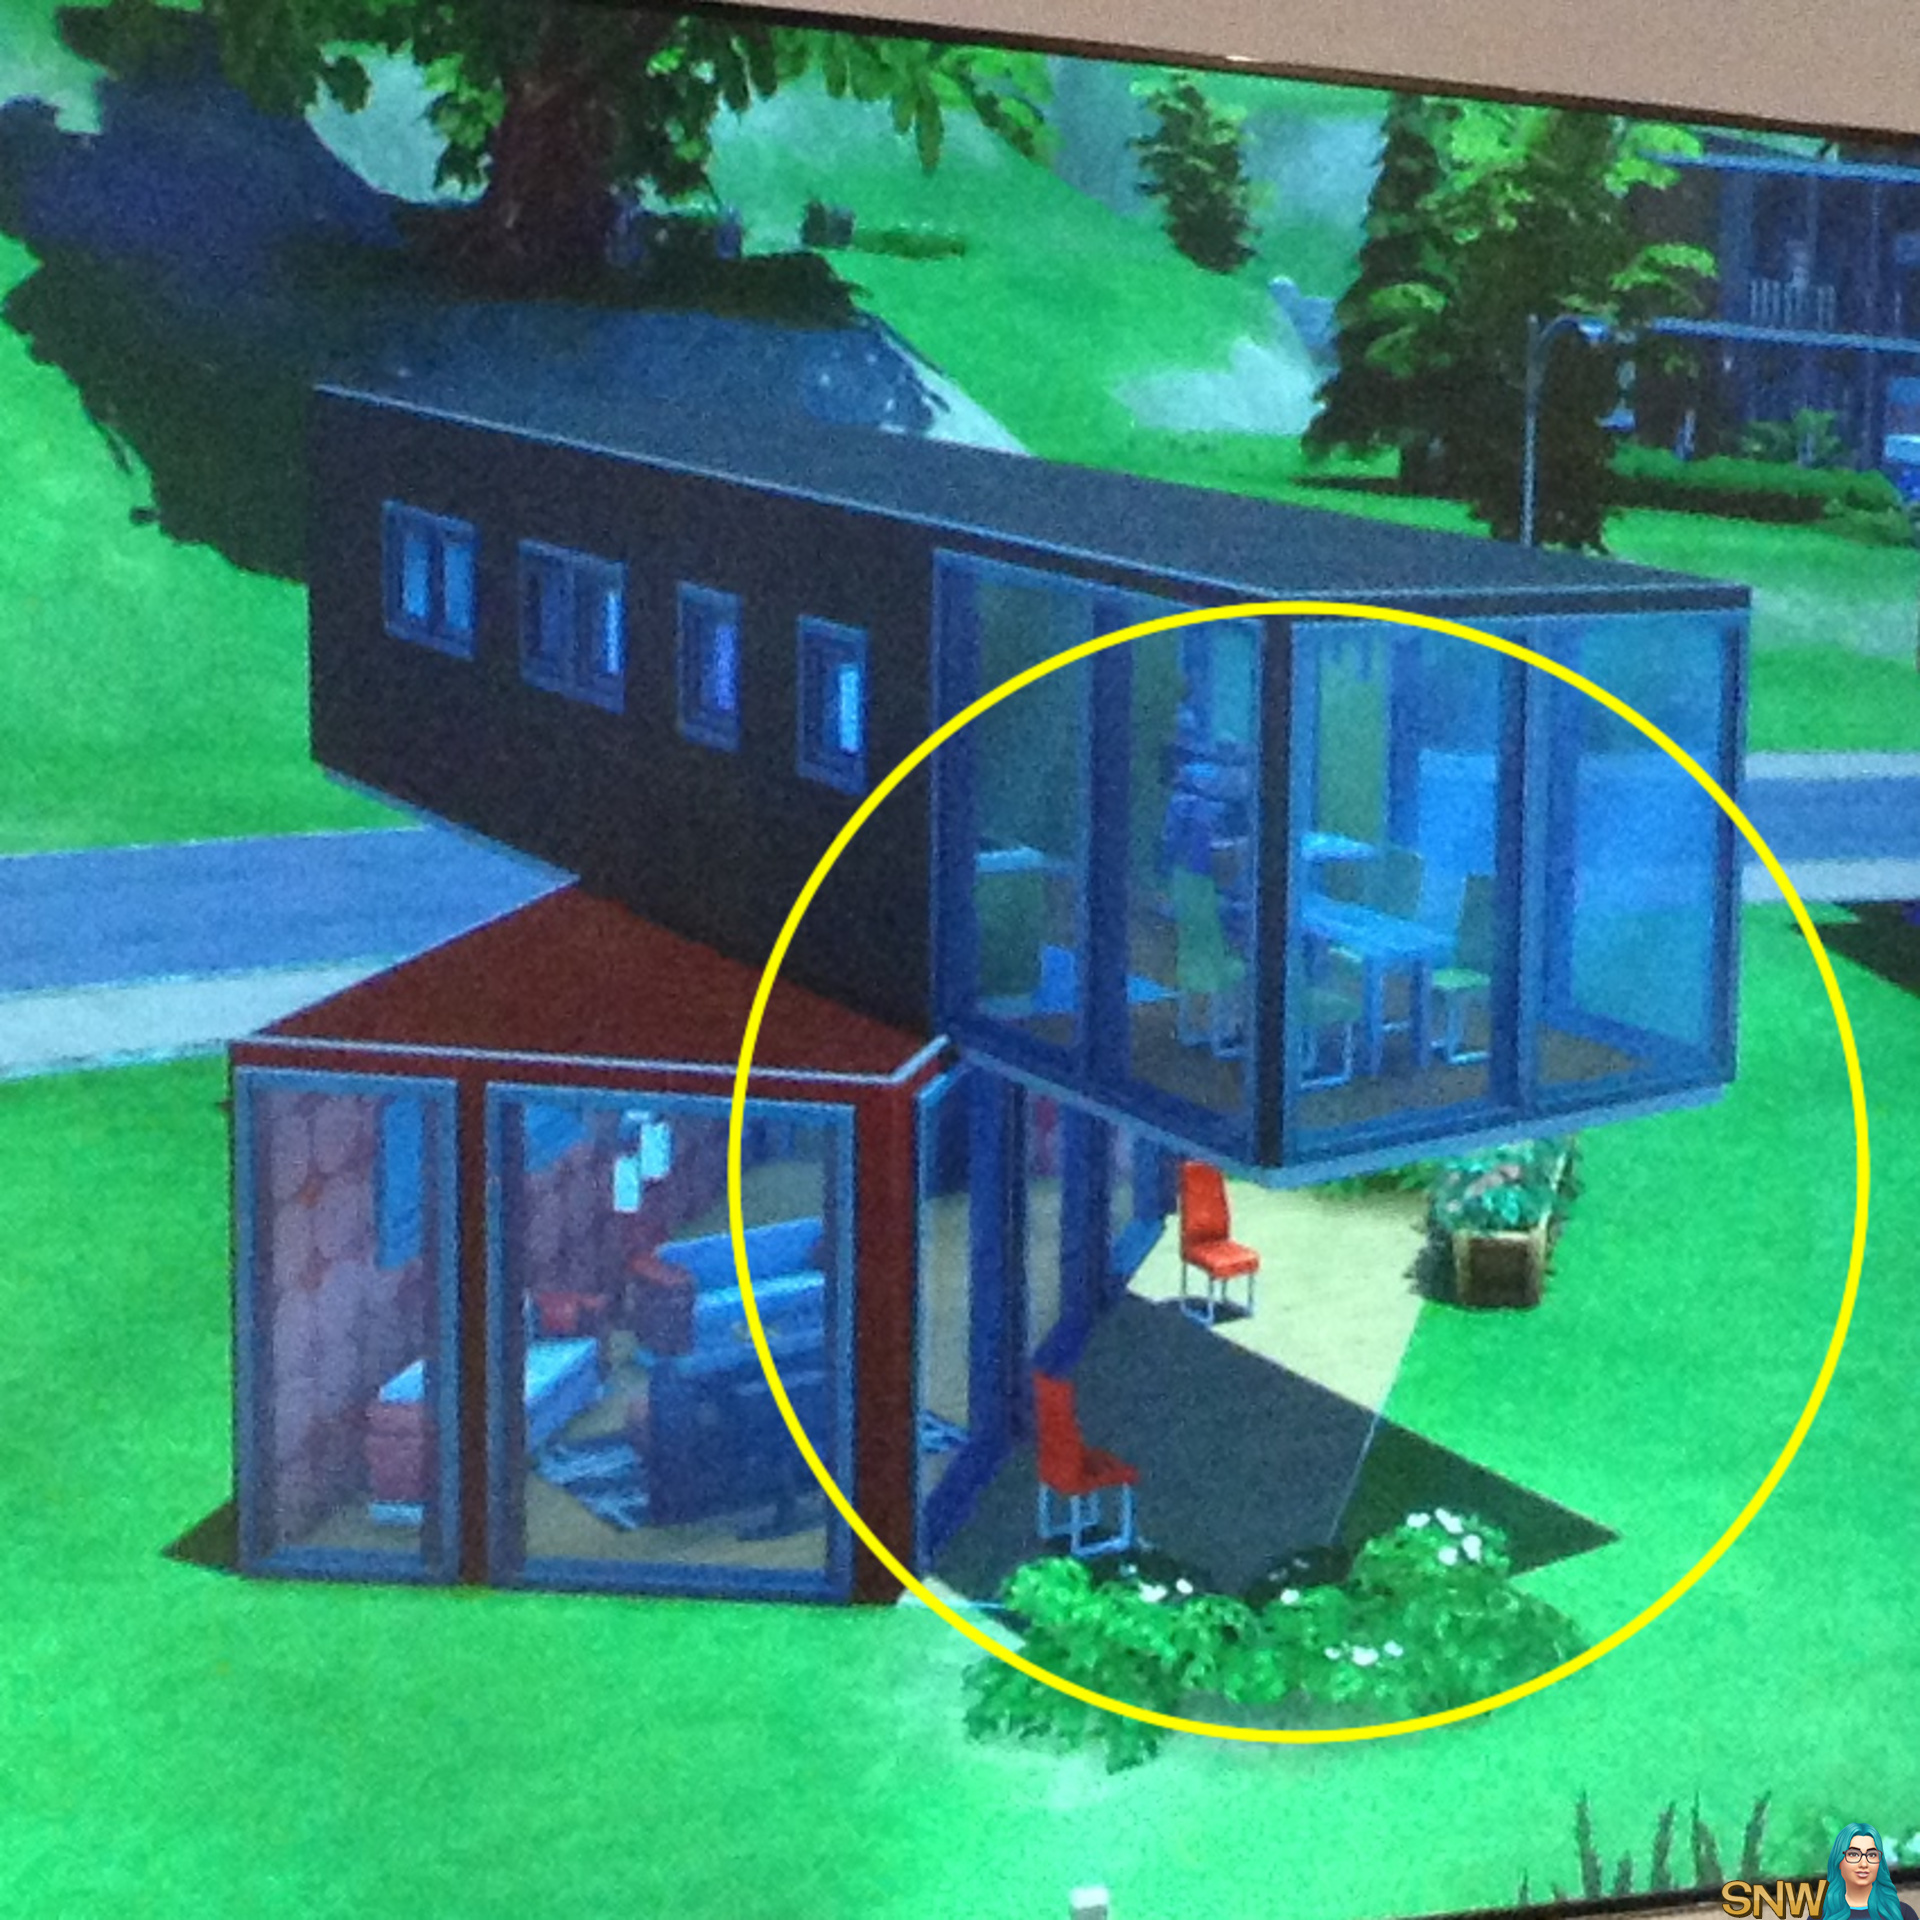 Sims camp de sims 4 bouwmodus snw - Lay outs rond het huis ...